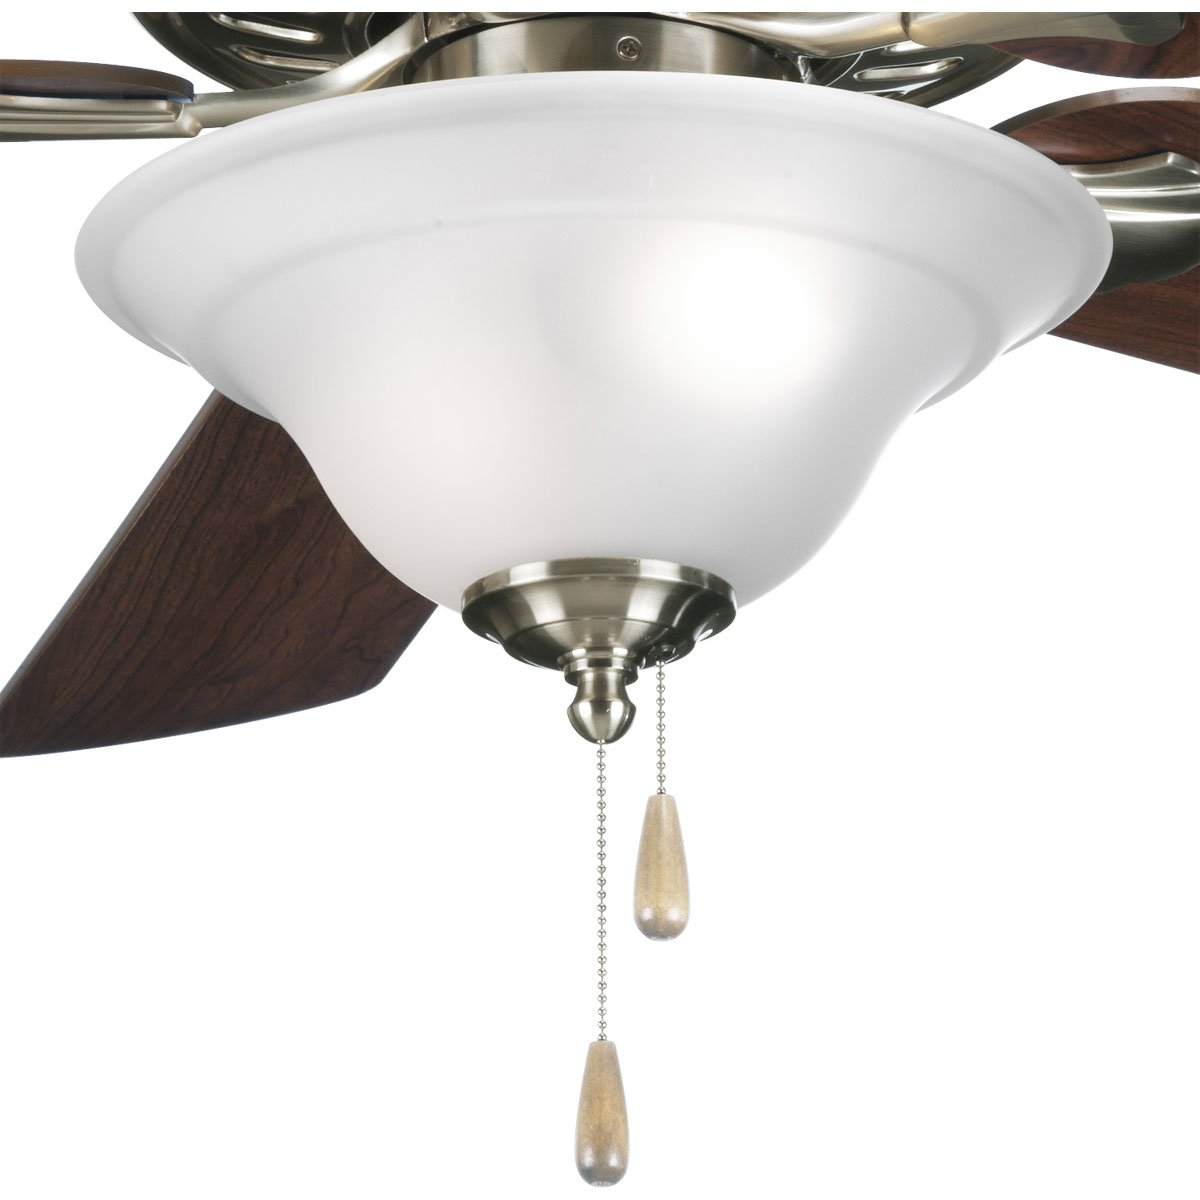 Progress Lighting P2628 09 2 Light Fan Kit With Etched Glass Bowl Remote And On Wiring A Ceiling Quick Connect Brushed Nickel Flush Mount Fixtures